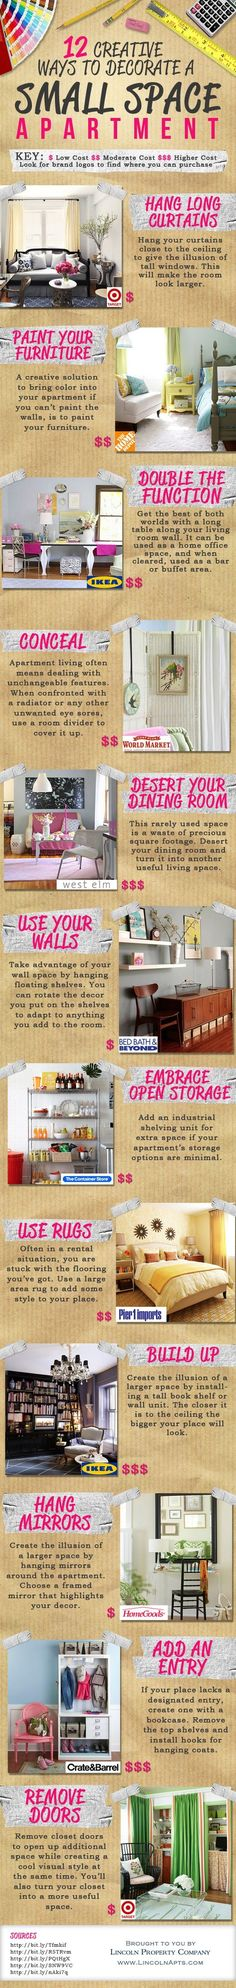 Clever ideas for making the most out of a small apartment.